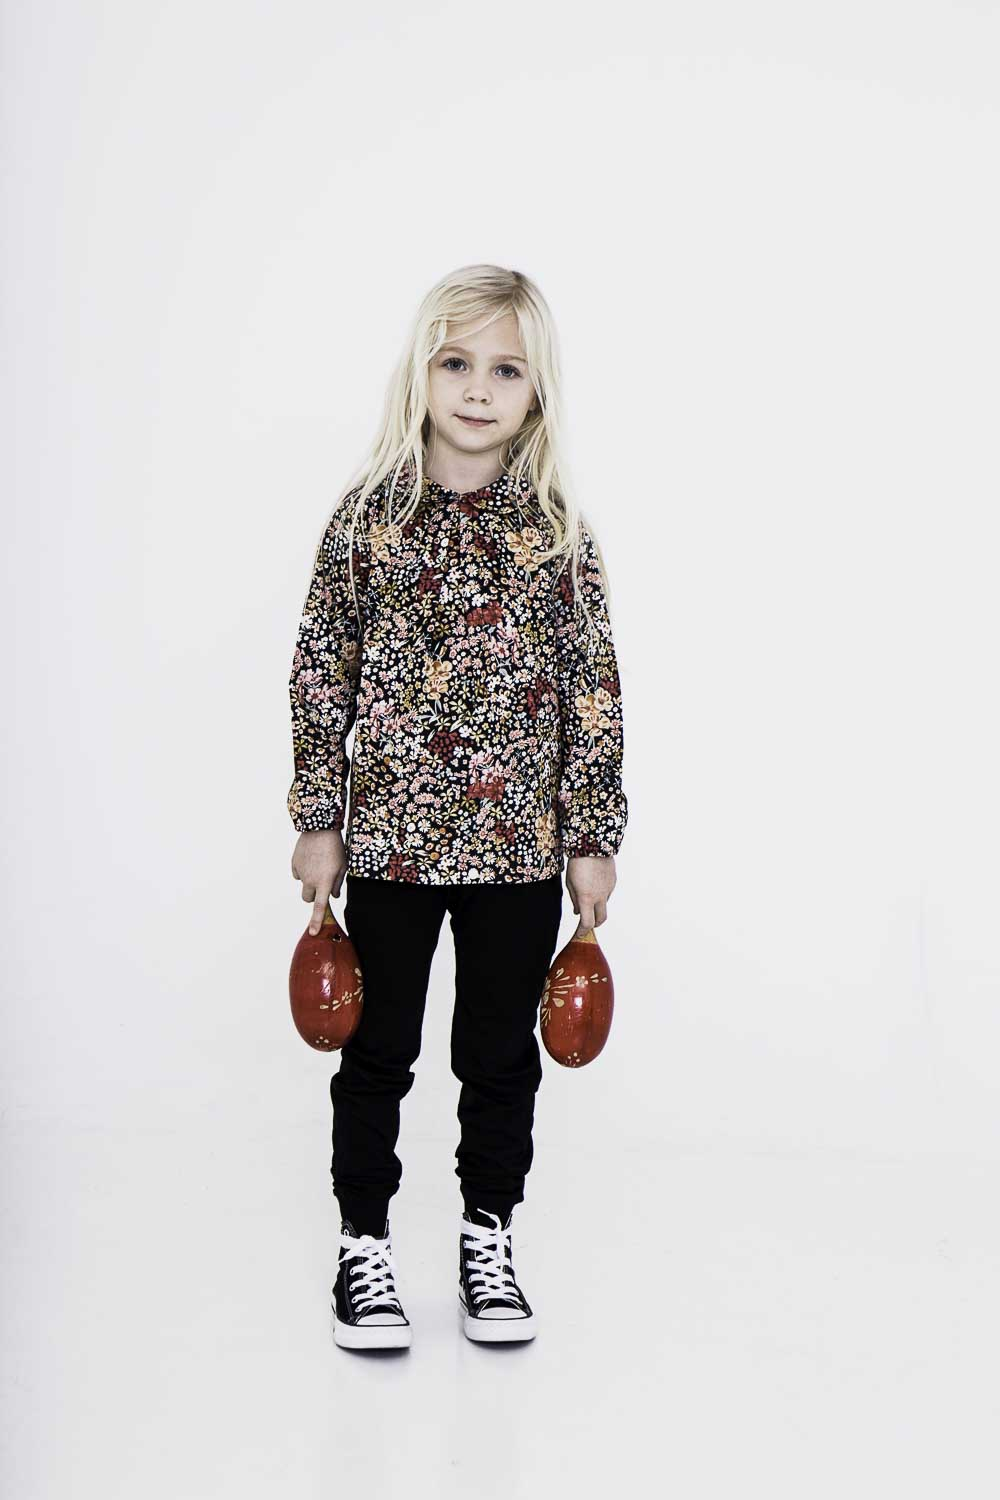 iglo-indi-winter-2017-2018-kidsfashion-trends-aw-kindermode-8